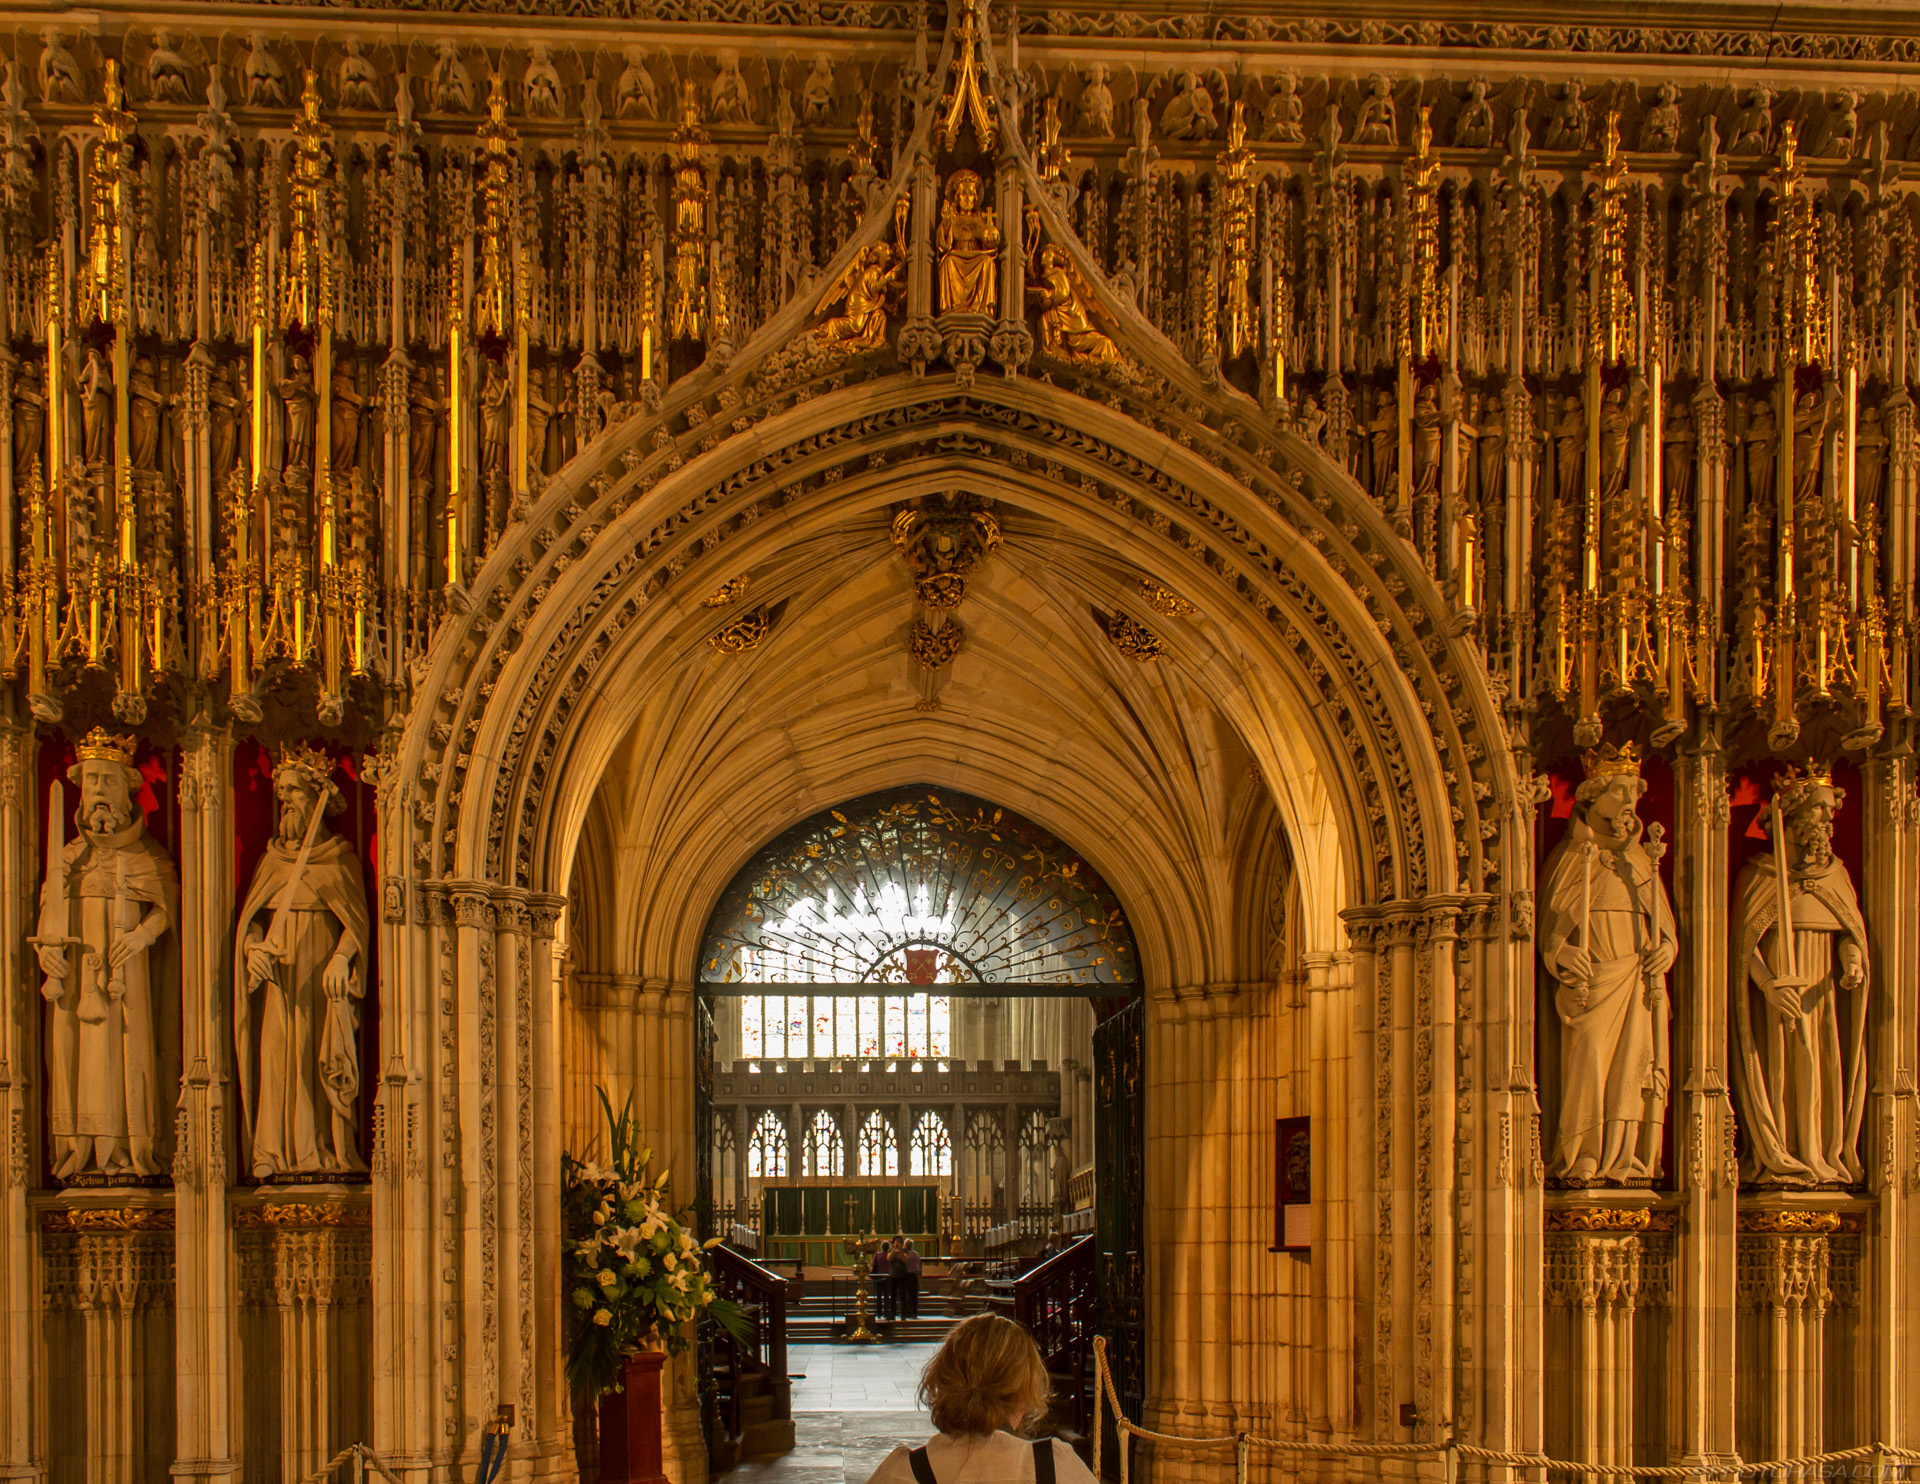 https://photorasa.com/yorkminster-cathedral/ornate-entrance-to-the-choir/